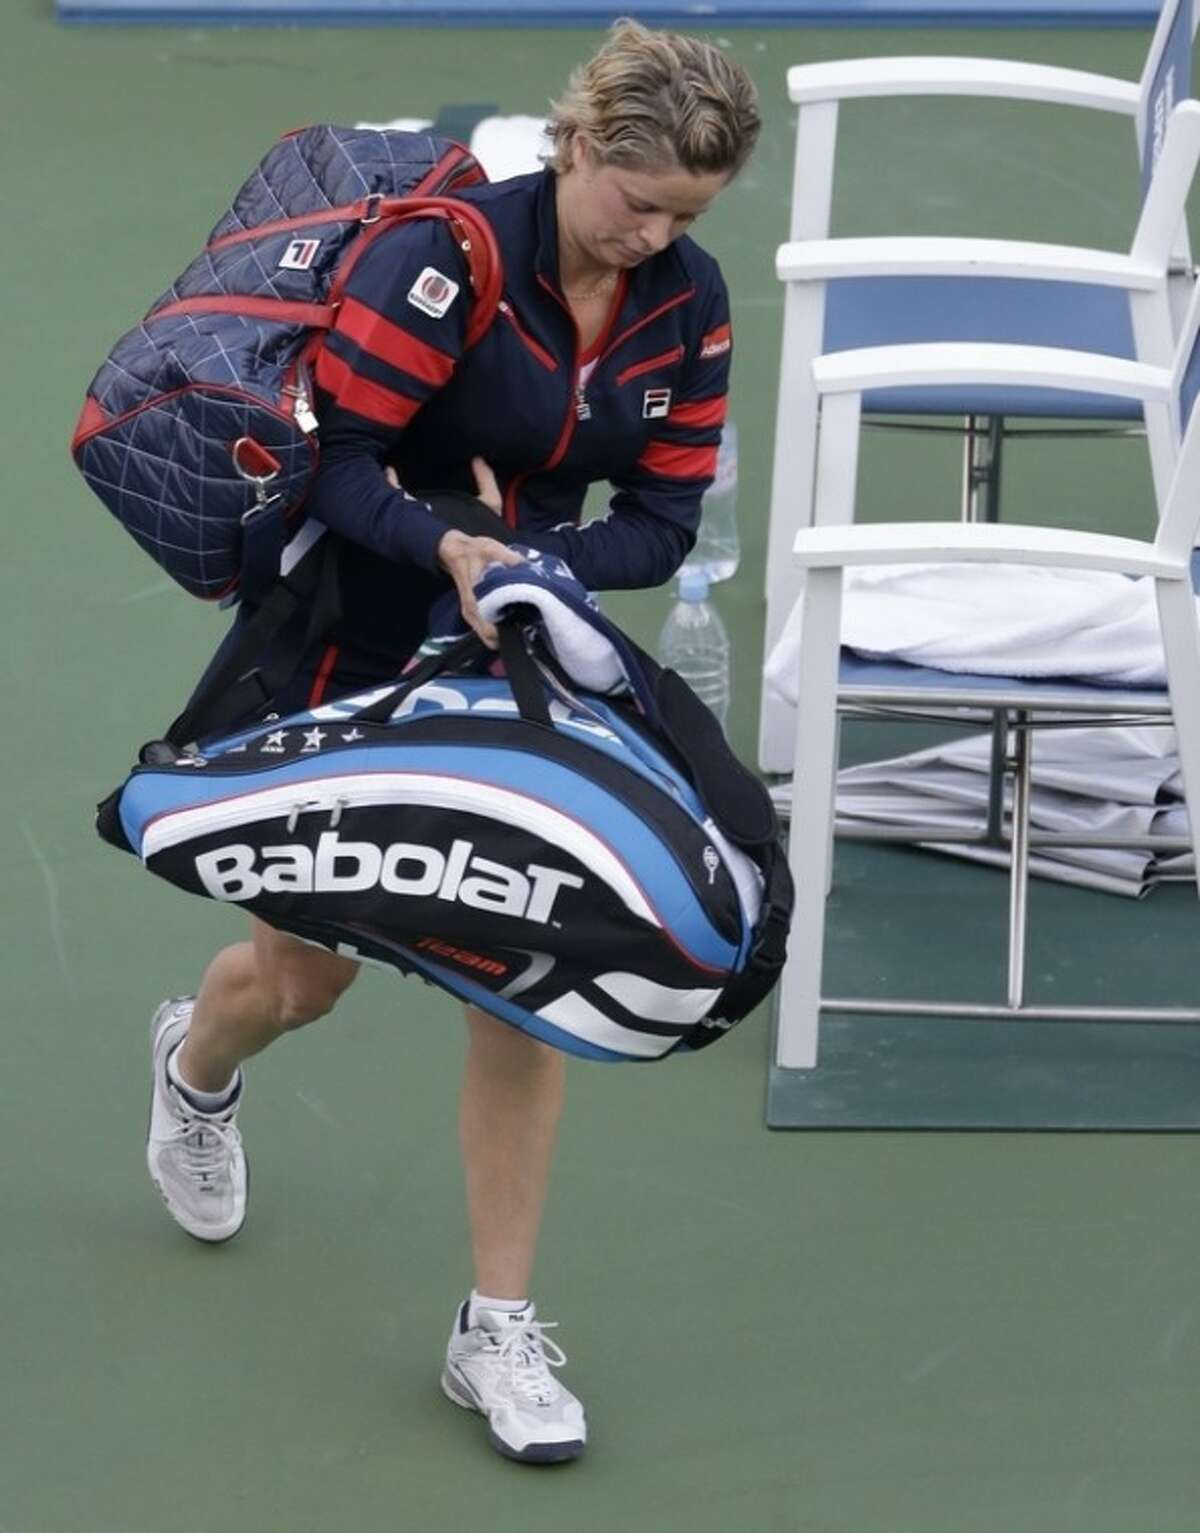 Kim Clijsters of Belgium walks off the court after losing to Laura Robson of Great Britain in the second round of play at the 2012 US Open tennis tournament, Wednesday, Aug. 29, 2012, in New York. (AP Photo/Darron Cummings)